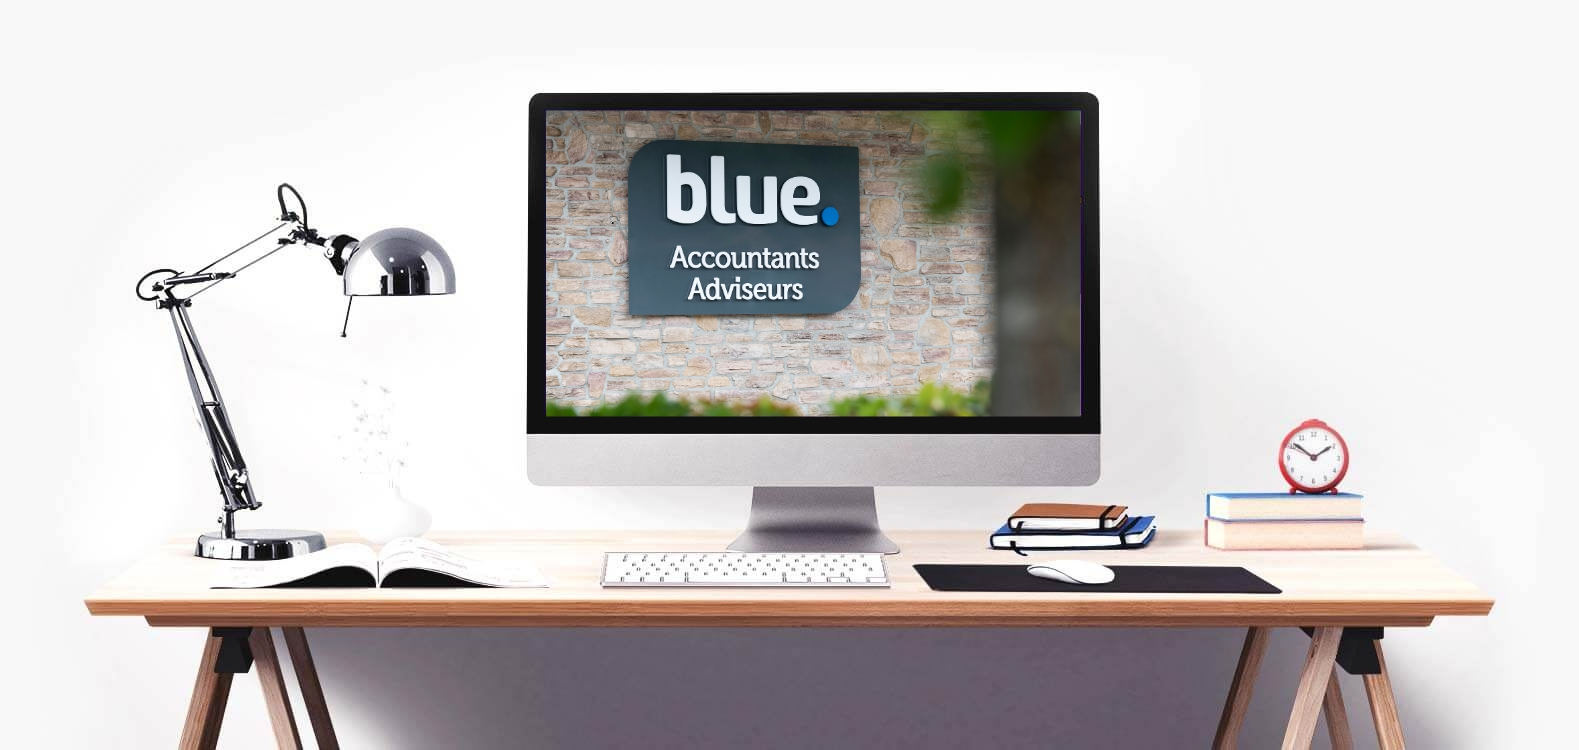 blue accountants adviseurs computer